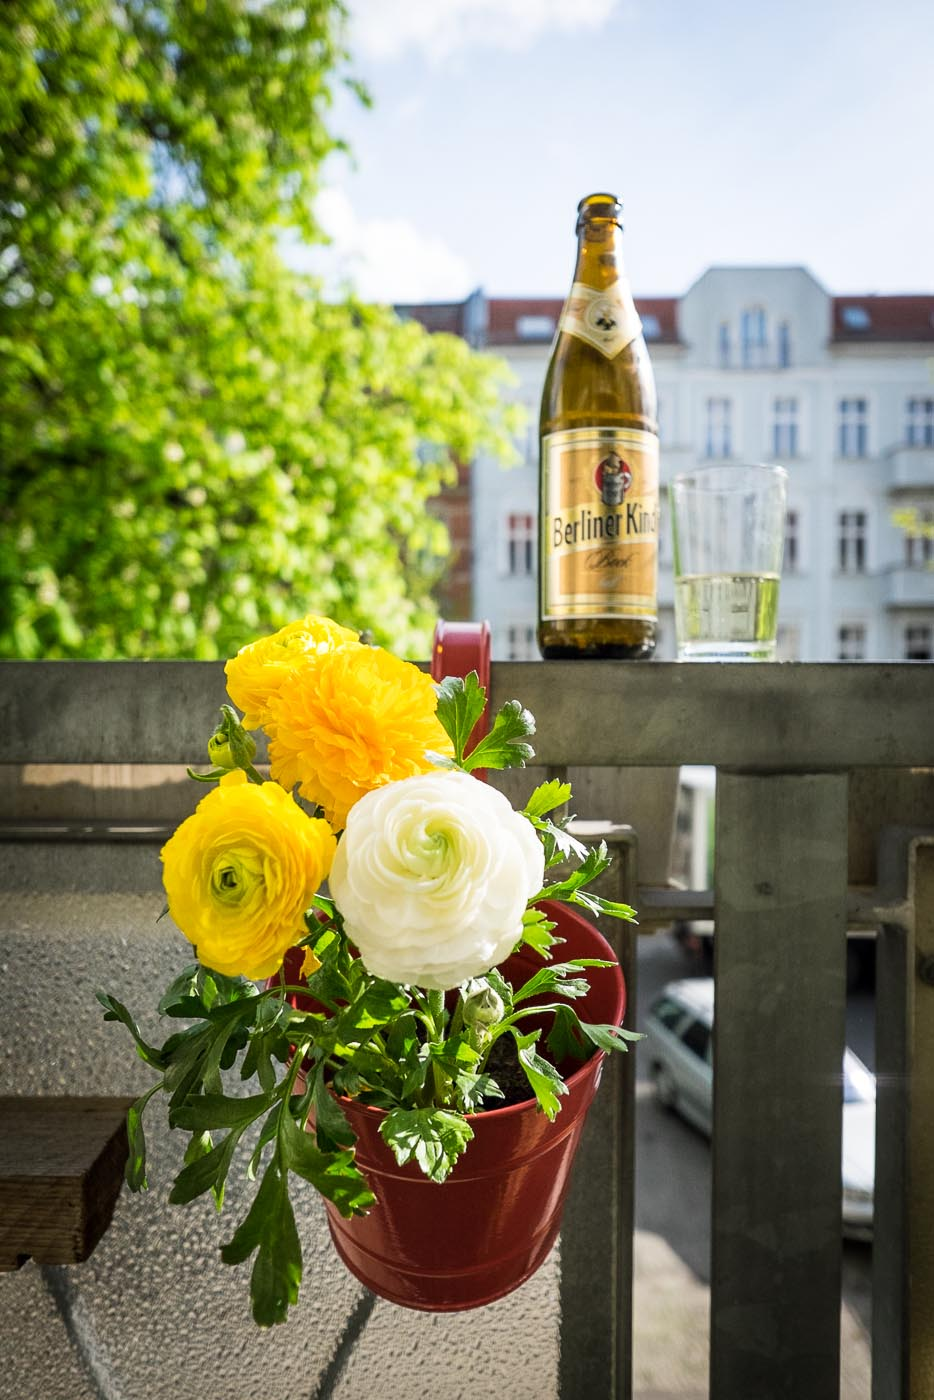 Flowers and beer in Berlin, Germany